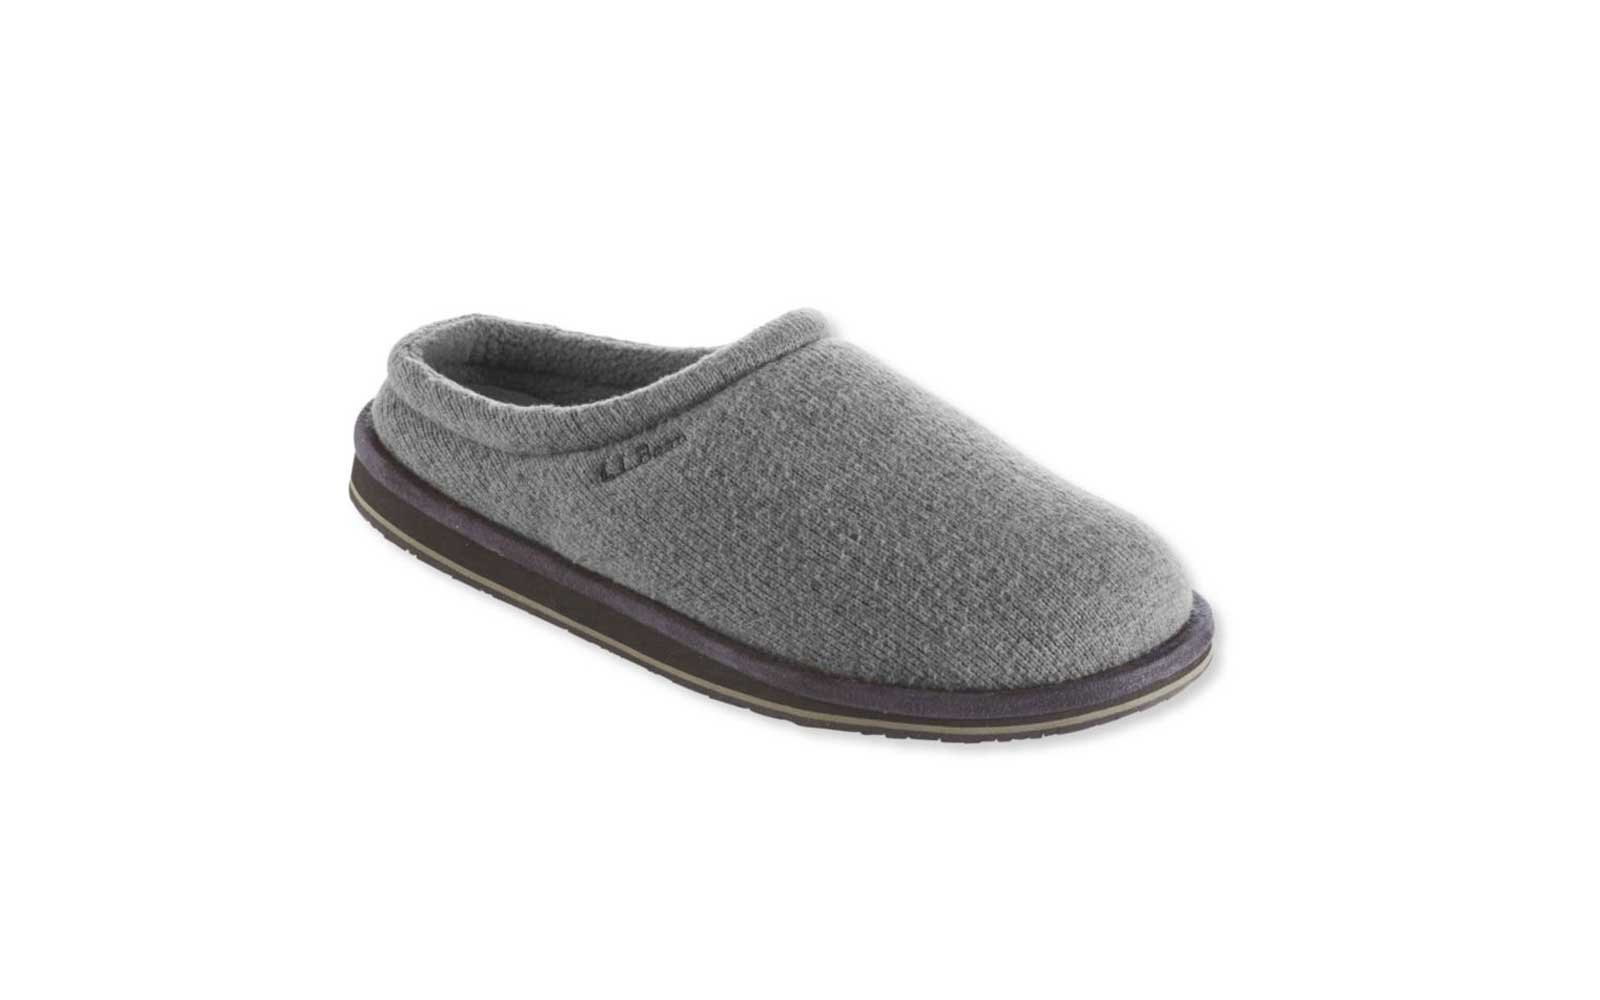 Sweater Fleece Scuffs Slippers Gifts That Look Expensive